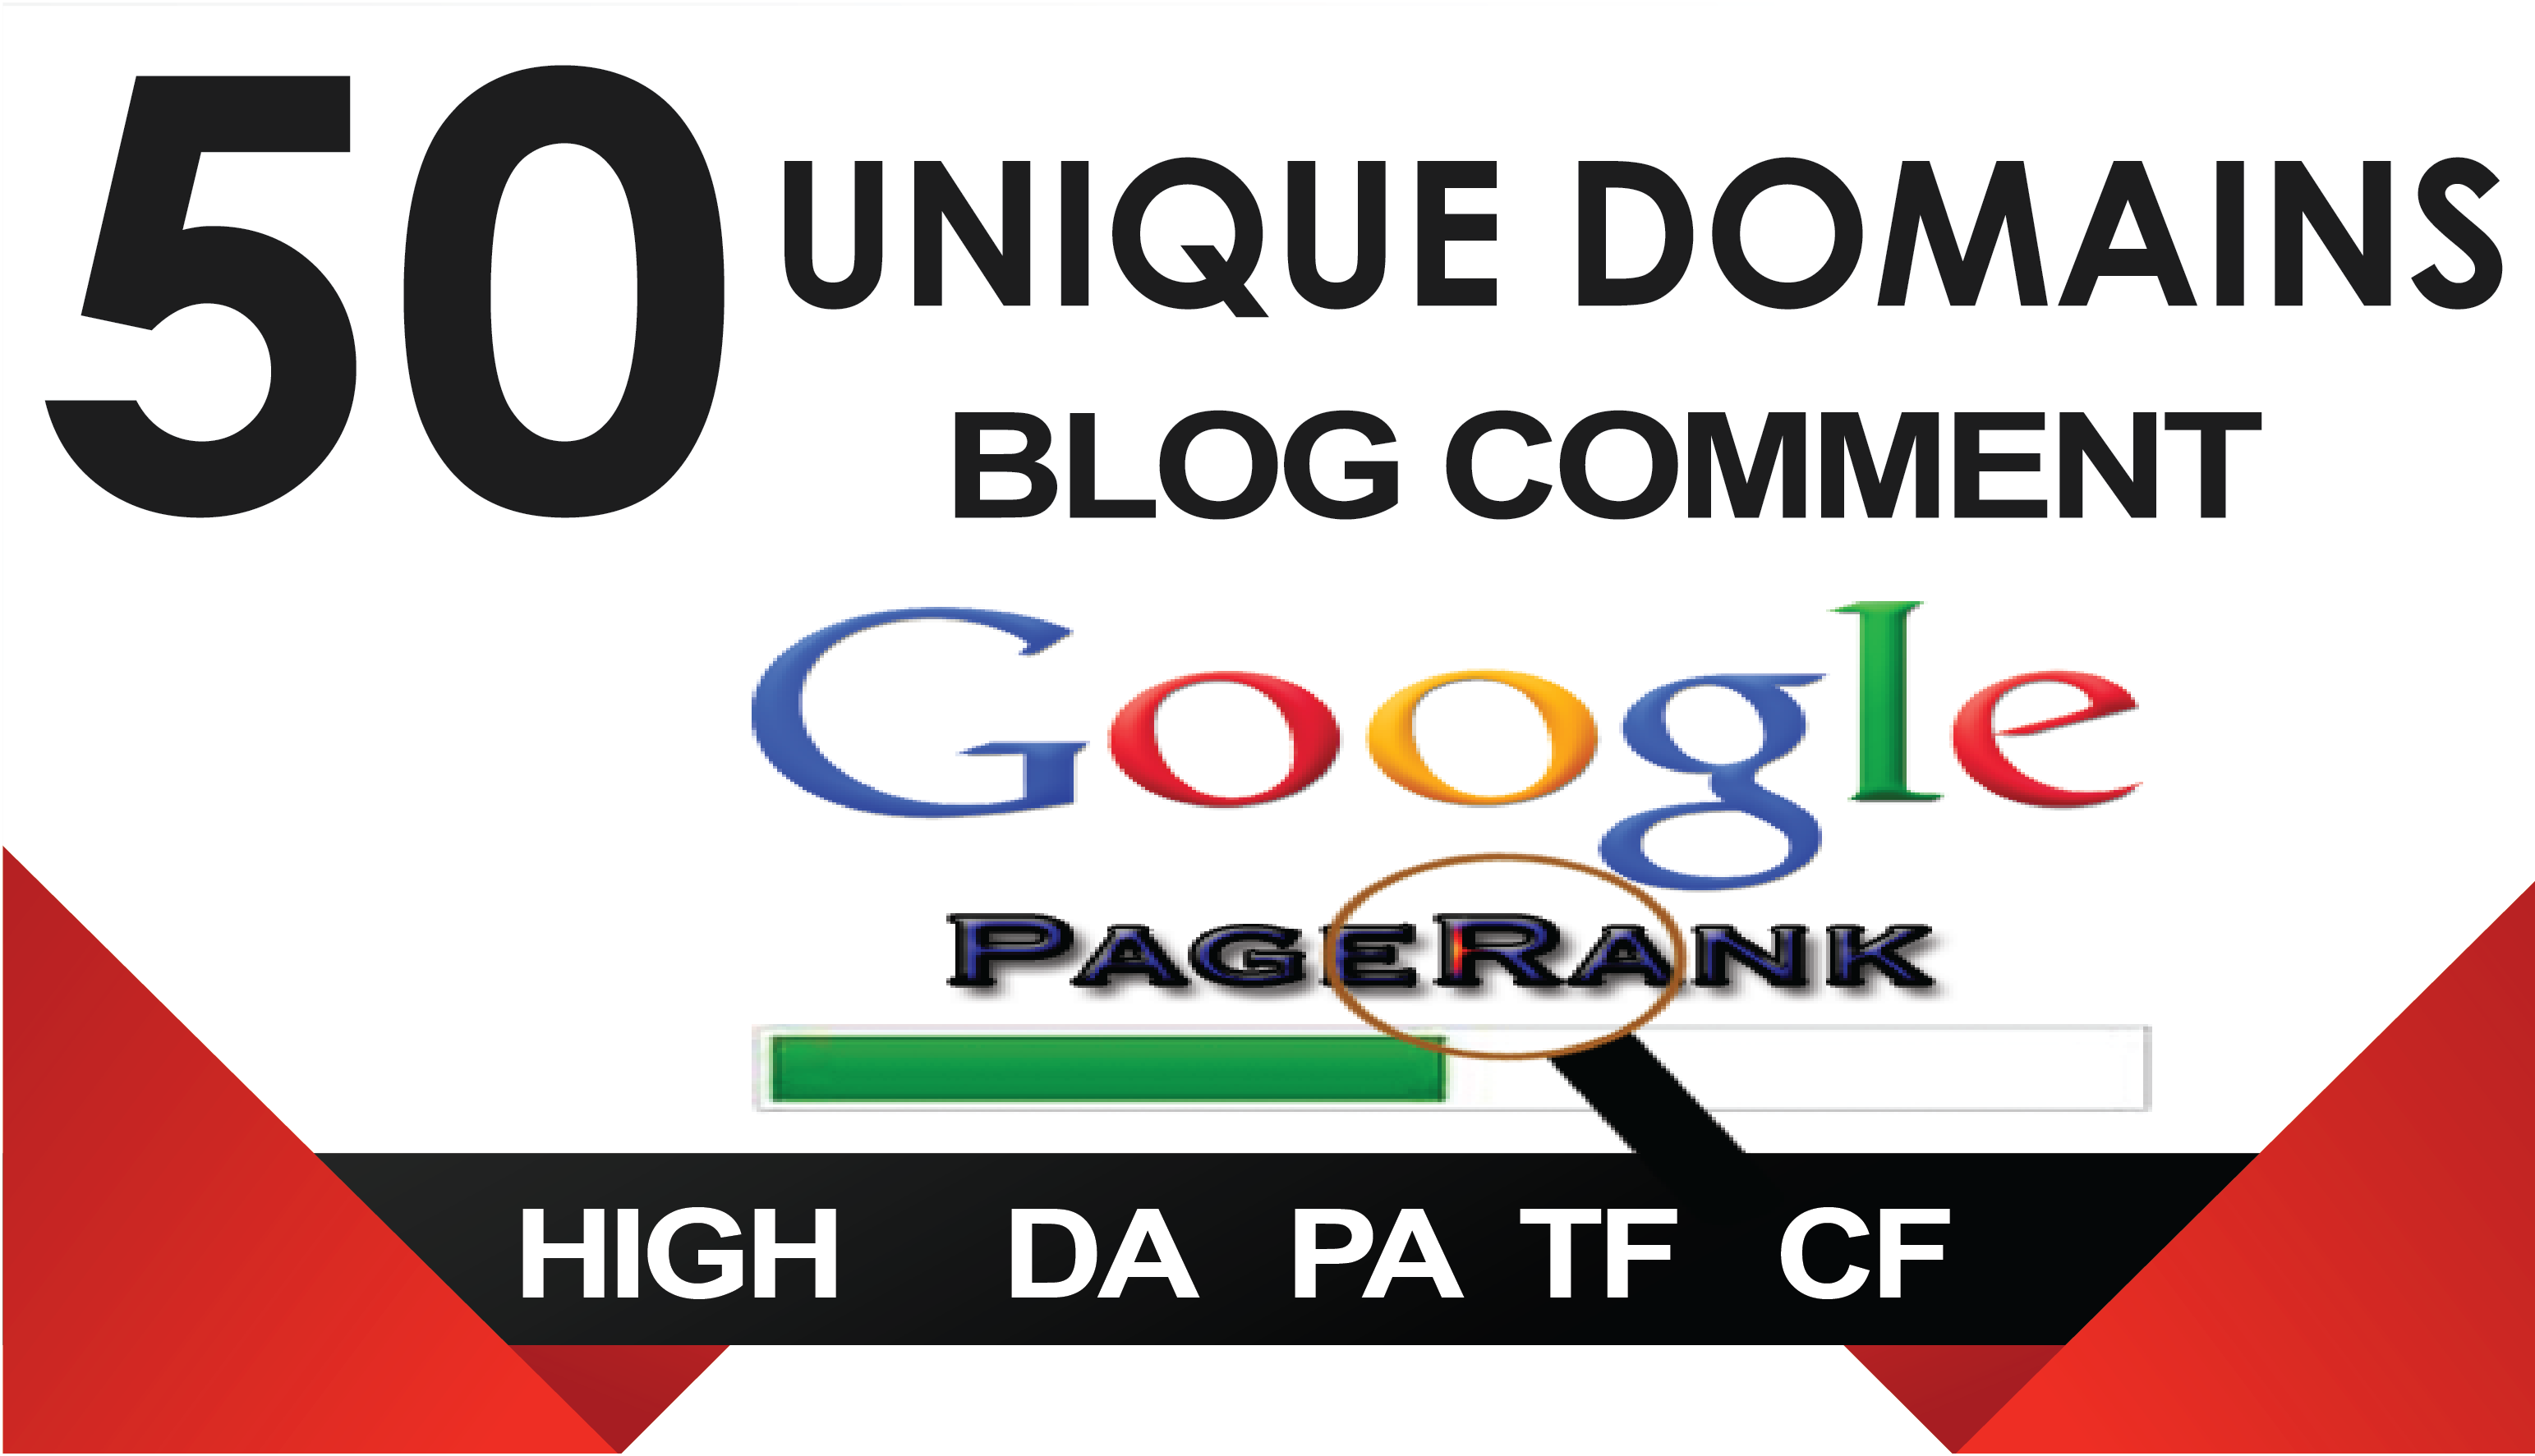 I will 50 unique domains blog comments backlinks High DA,PA,TF,CF